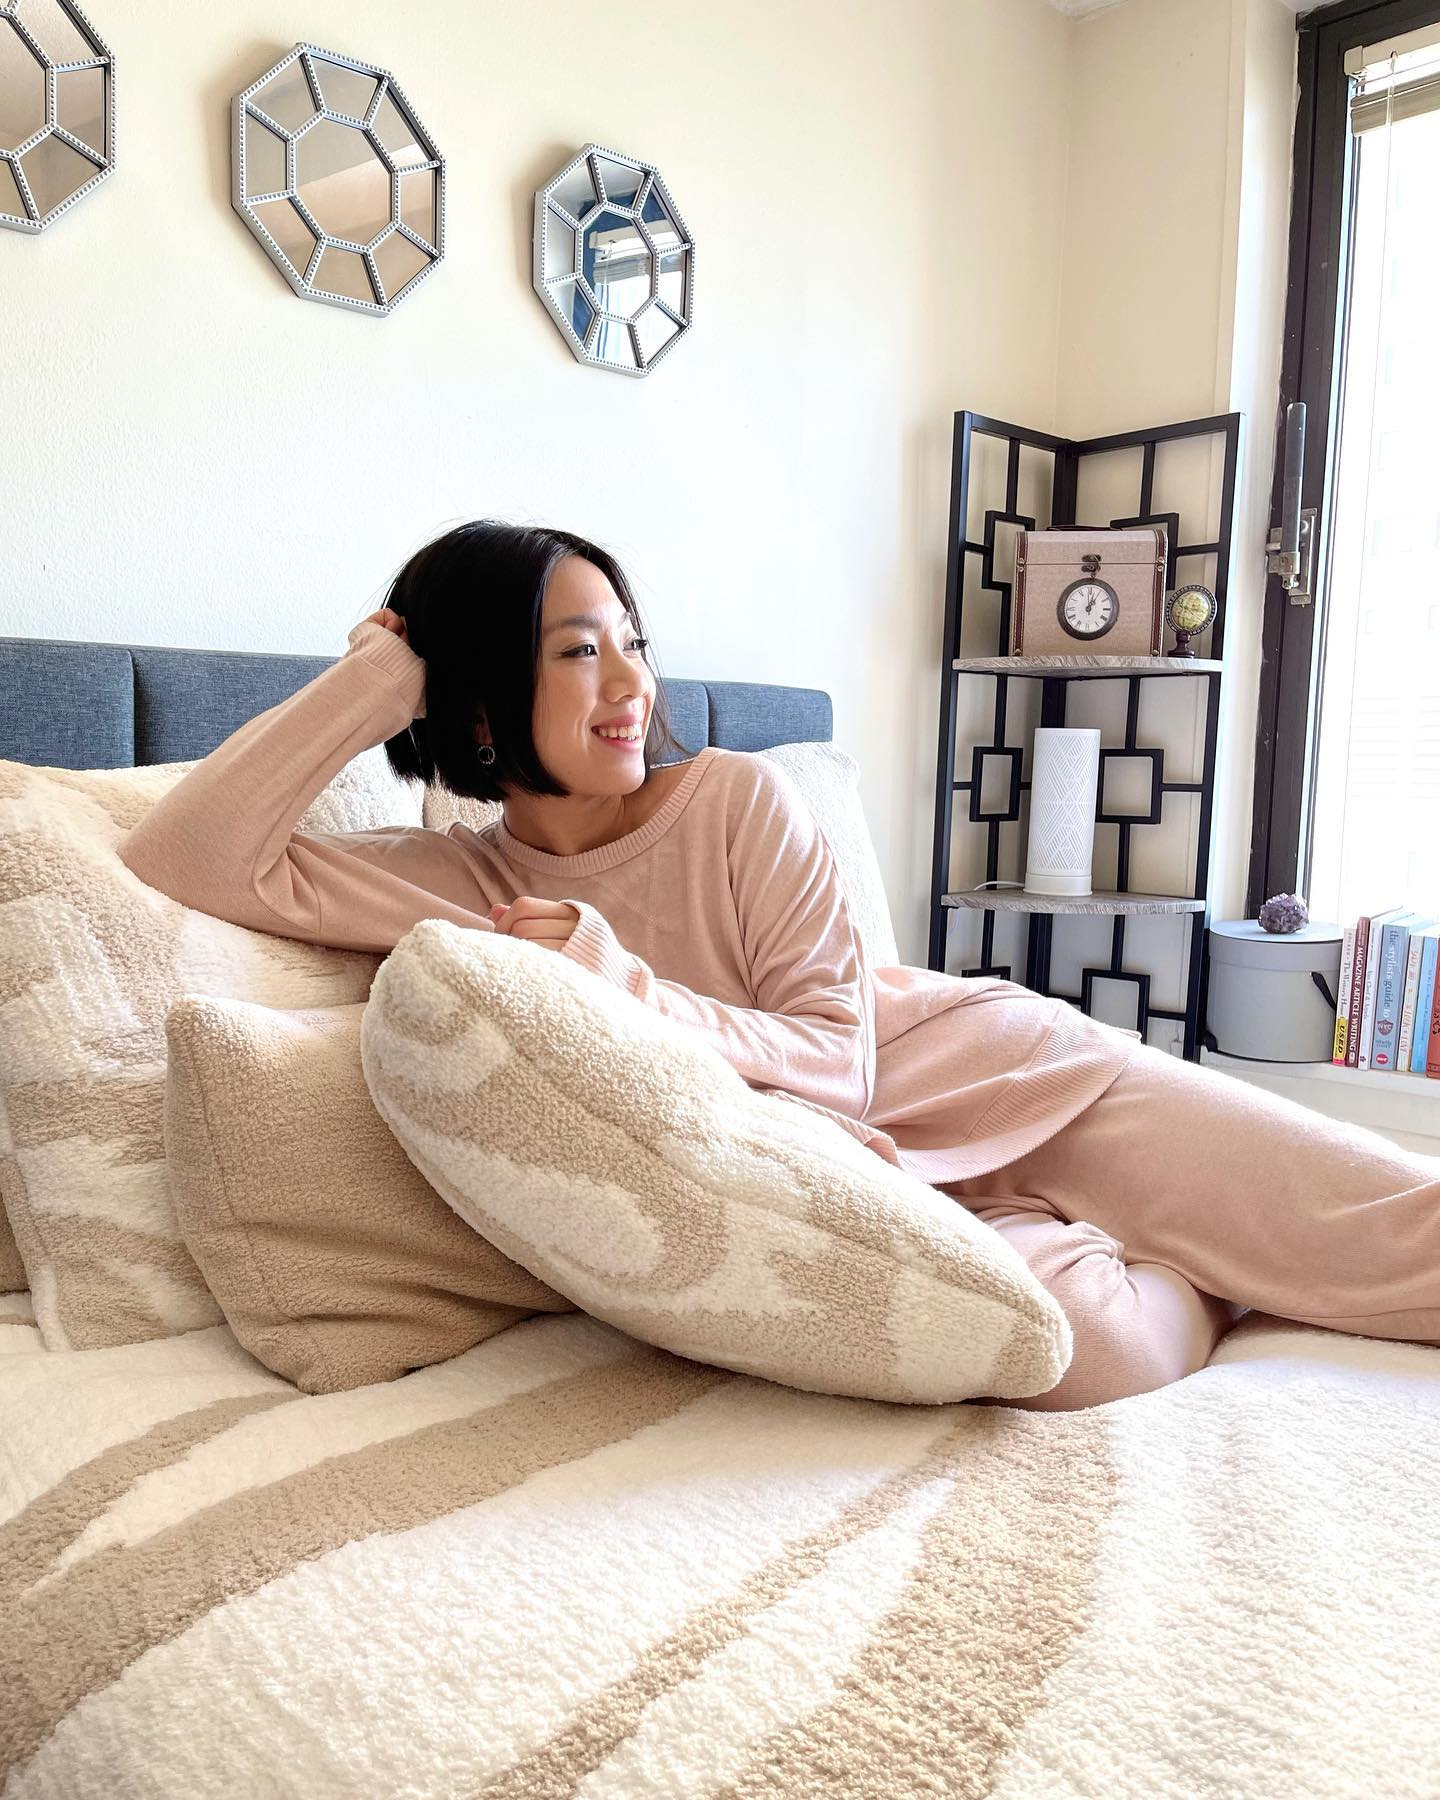 Woman smiling laying on bed. Woman lounging in loungewear. Woman lounging in pajamas. Woman smiling and relaxing on her bed.